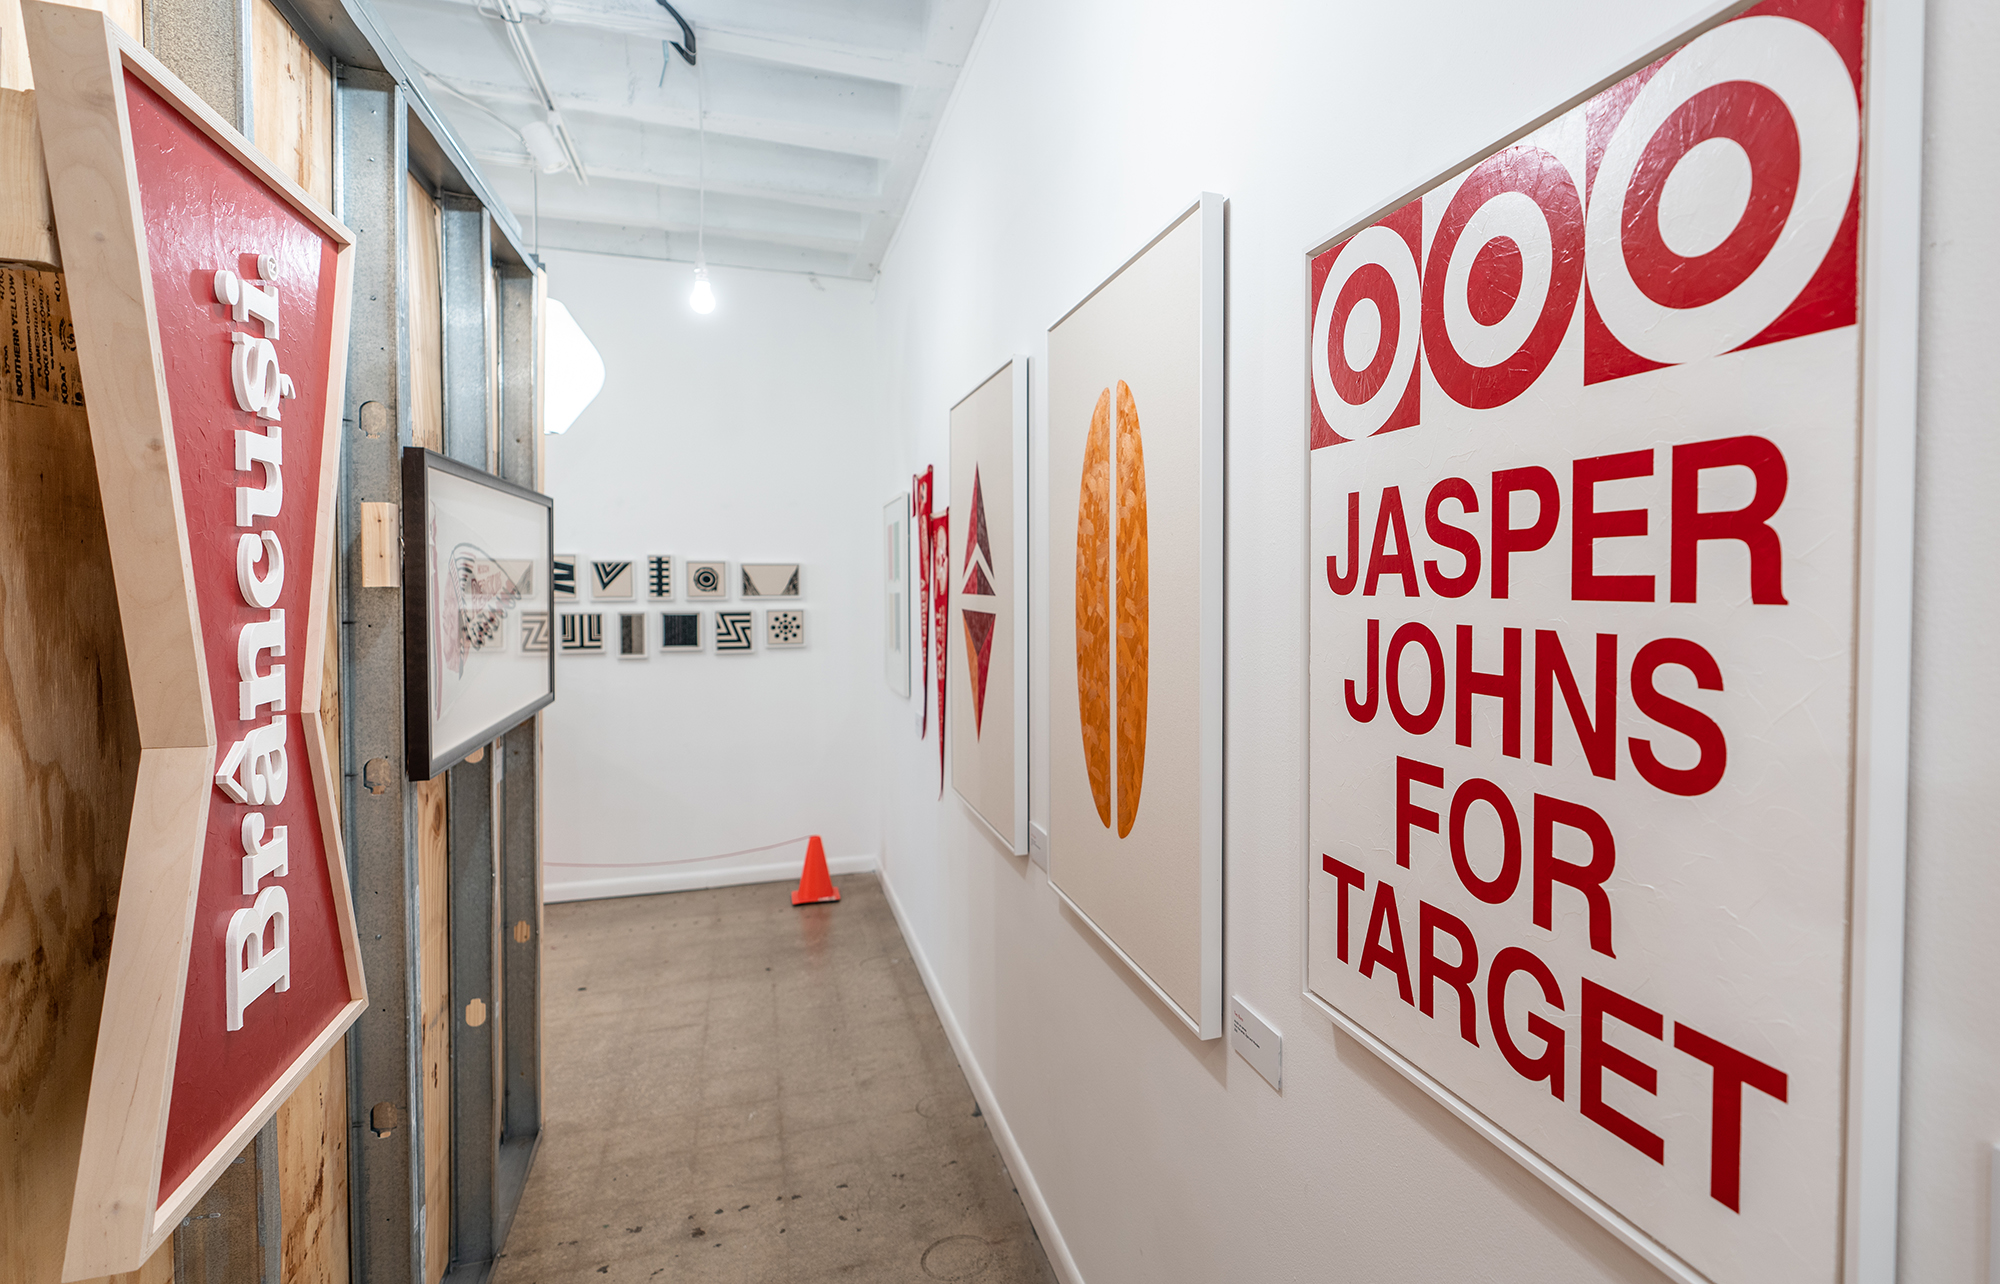 """""""Budweiser by Brancusi"""" and """"Jasper Johns for Target"""" on """"Bunker Solaris"""" exterior at Culture House (Washington, DC 2019)"""